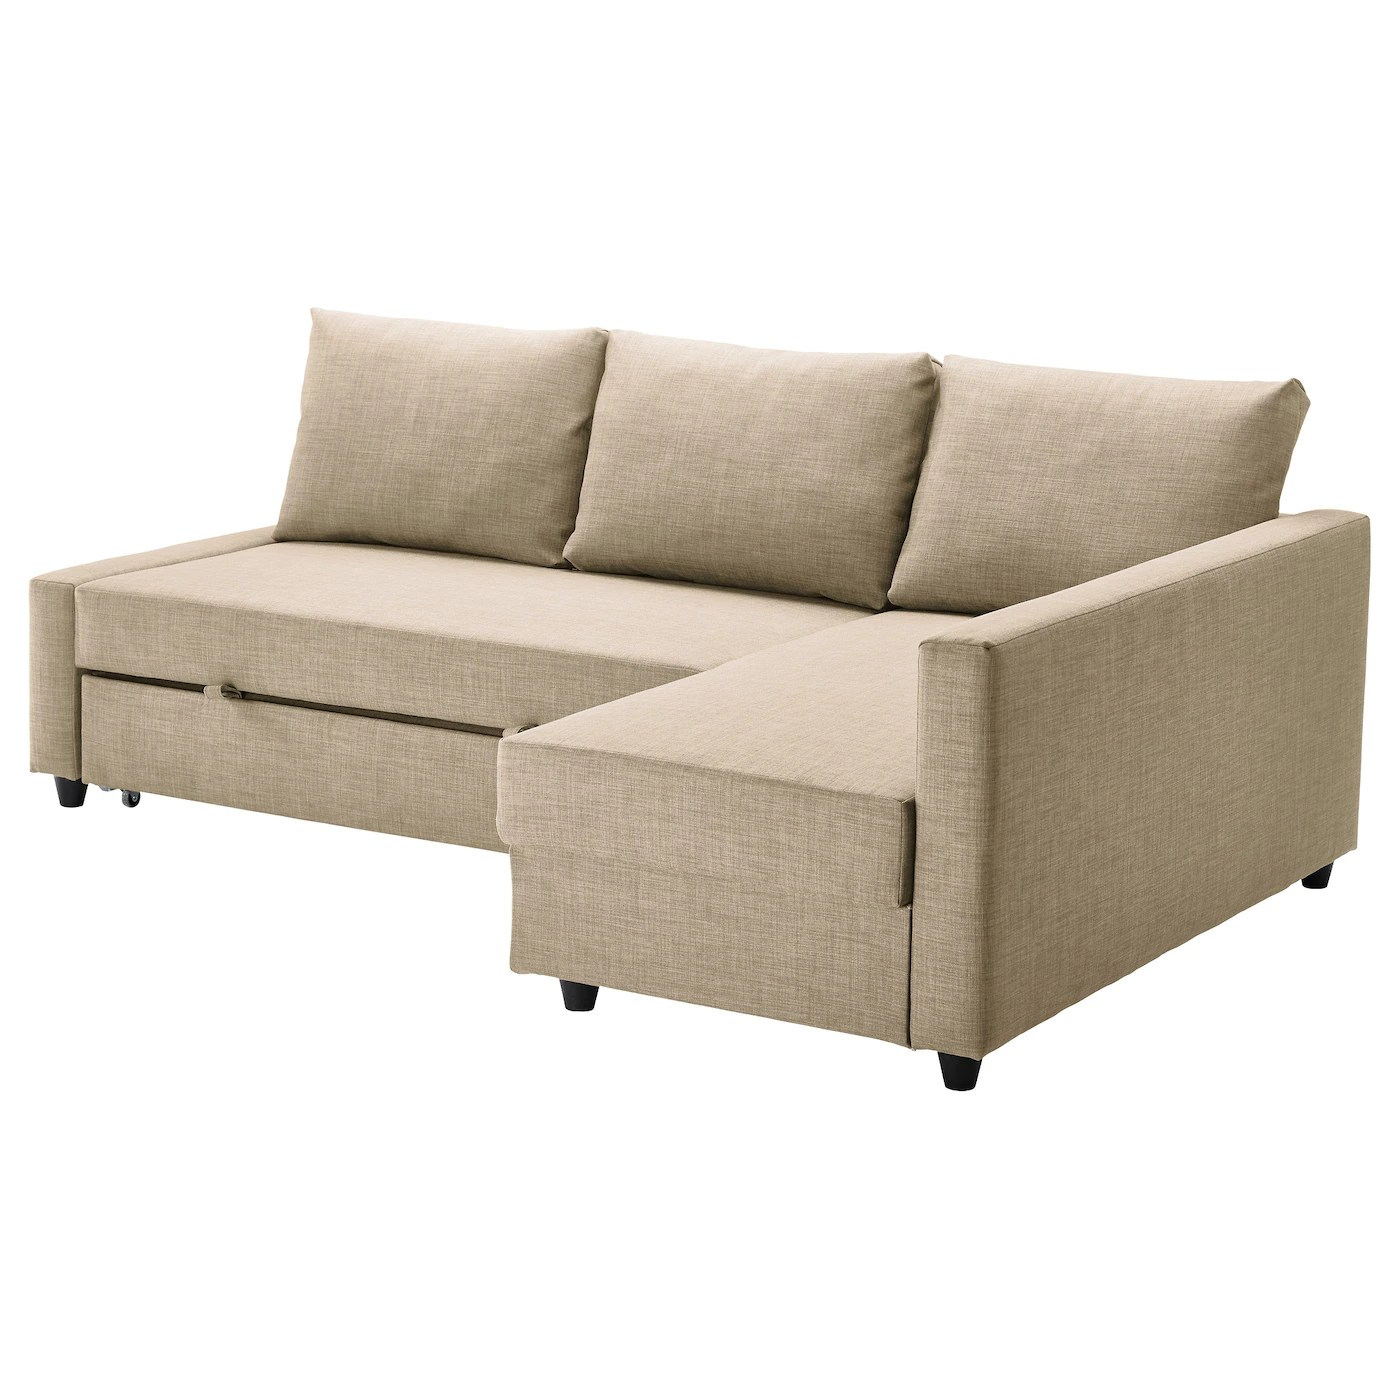 Bettsofa Ikea Friheten Friheten Corner Sofa Bed With Storage Skiftebo Beige